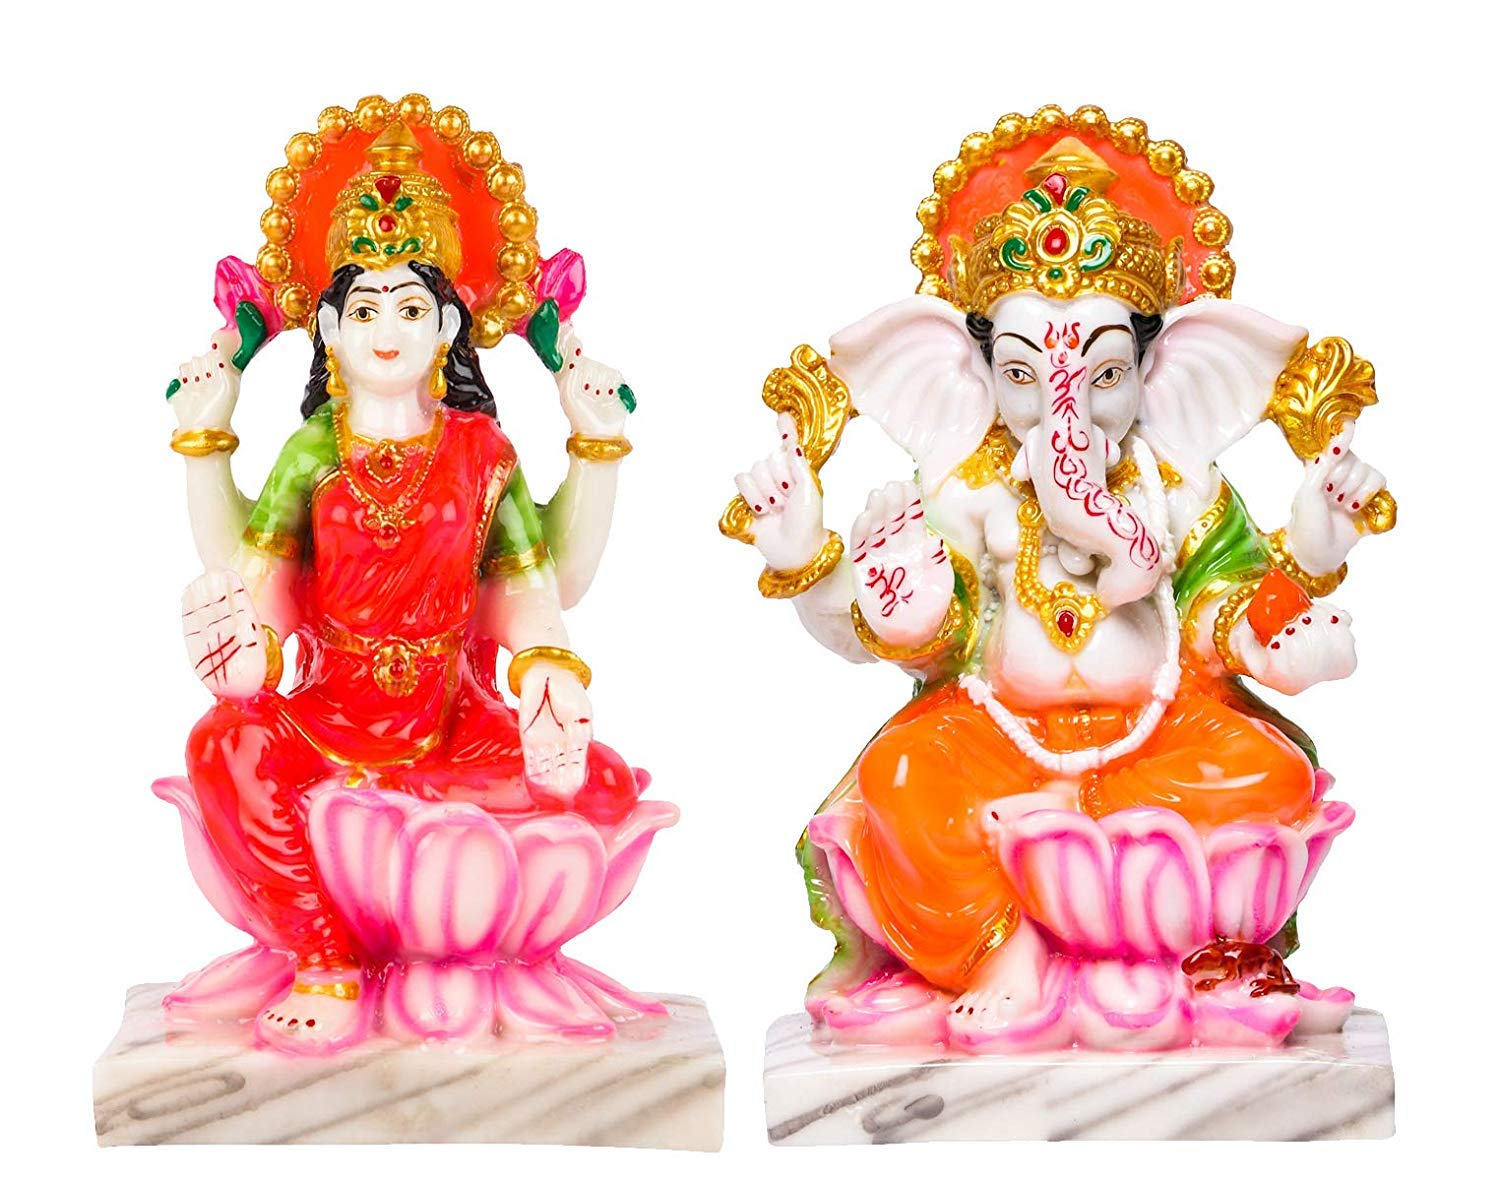 Buy Divine Gifts Laxmi Ganesh Idols Statues For Diwali Pooja 6 Inch Online At Low Prices In India Amazon In